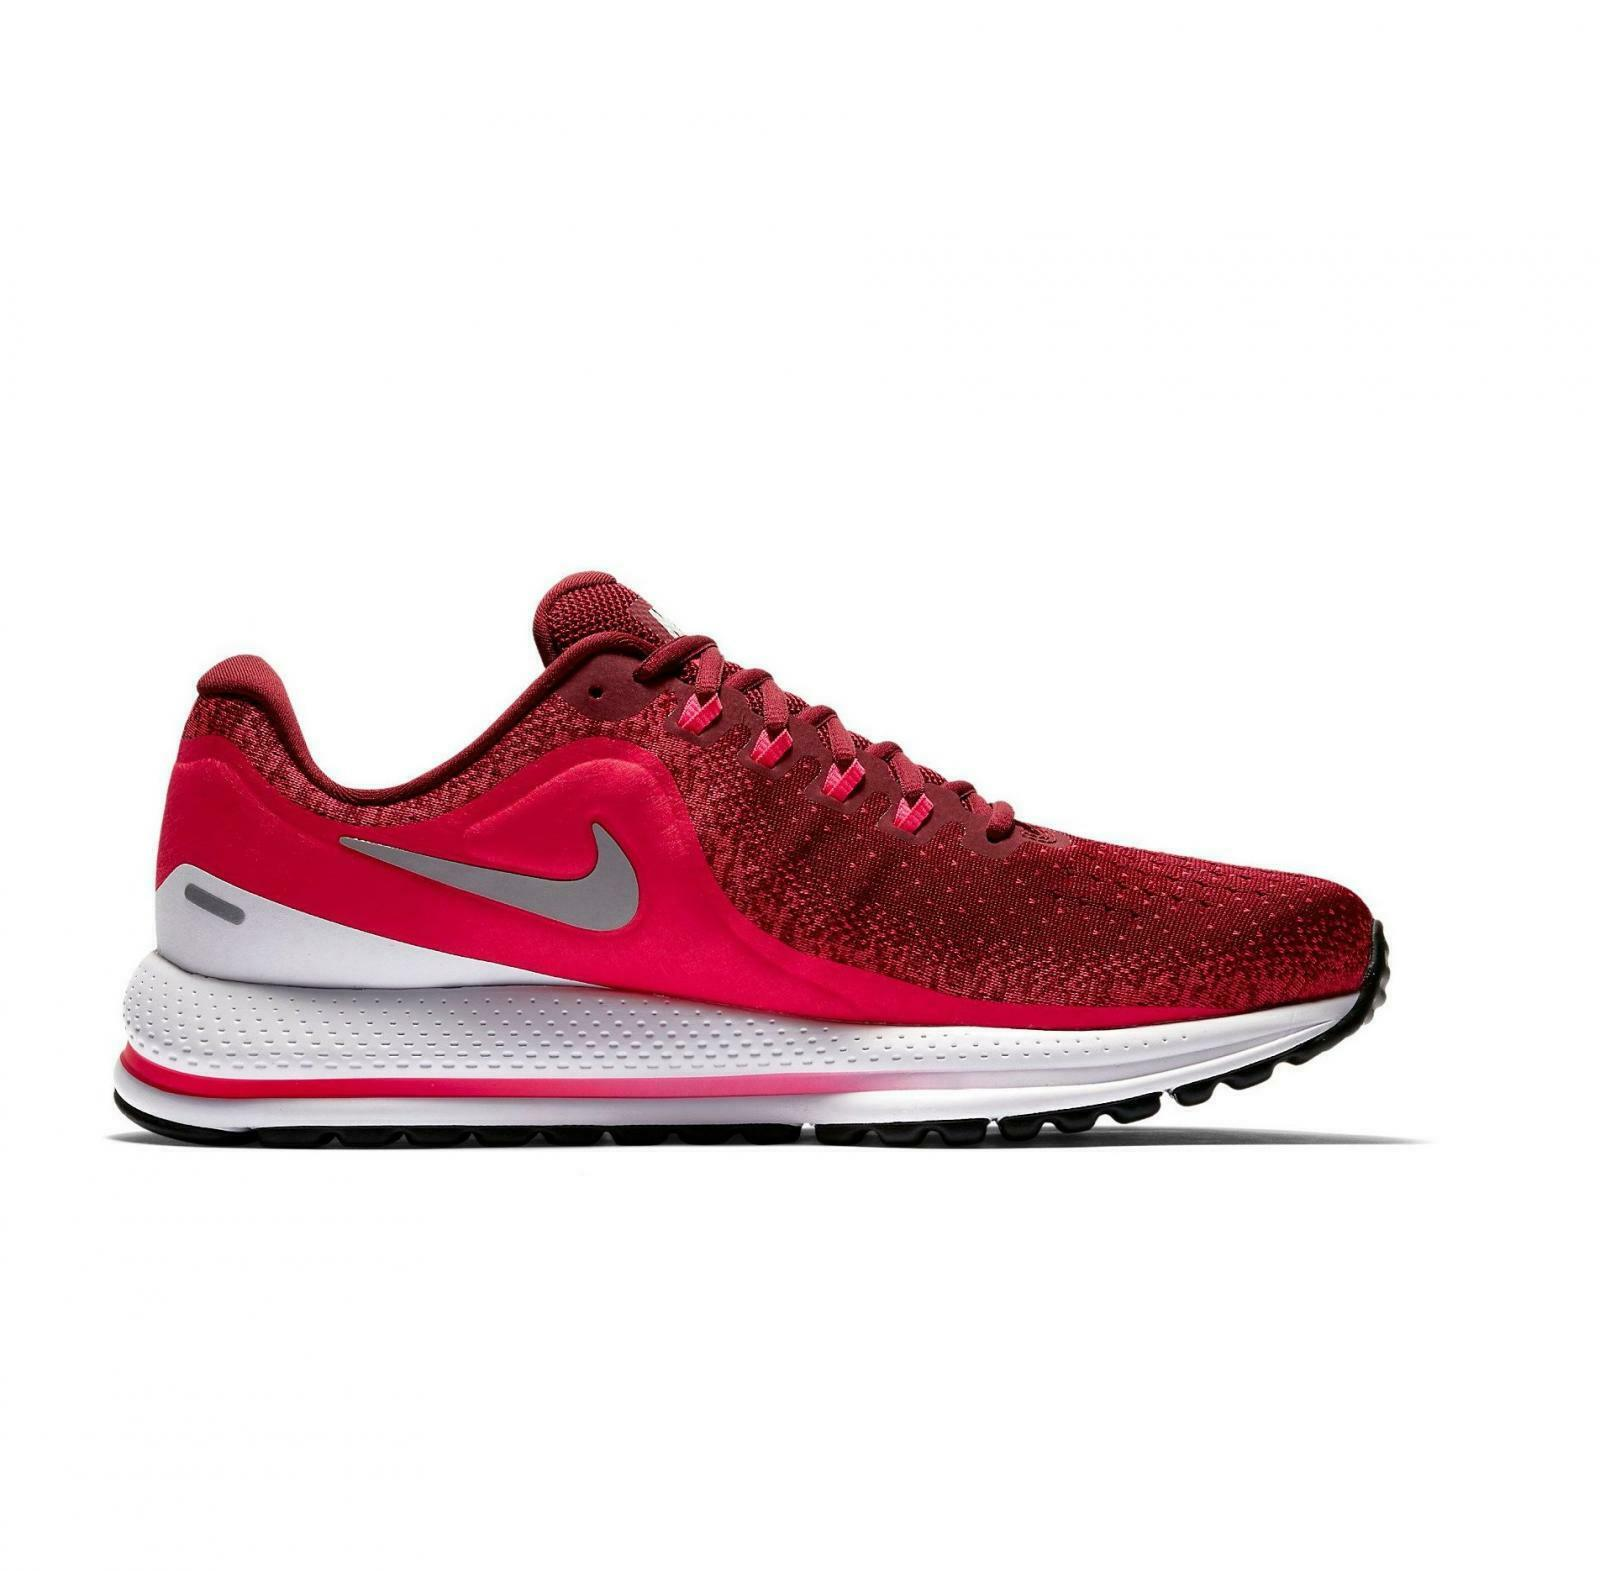 Mens NIKE AIR ZOOM VOMERO 13 Team Red Trainers 922908 602